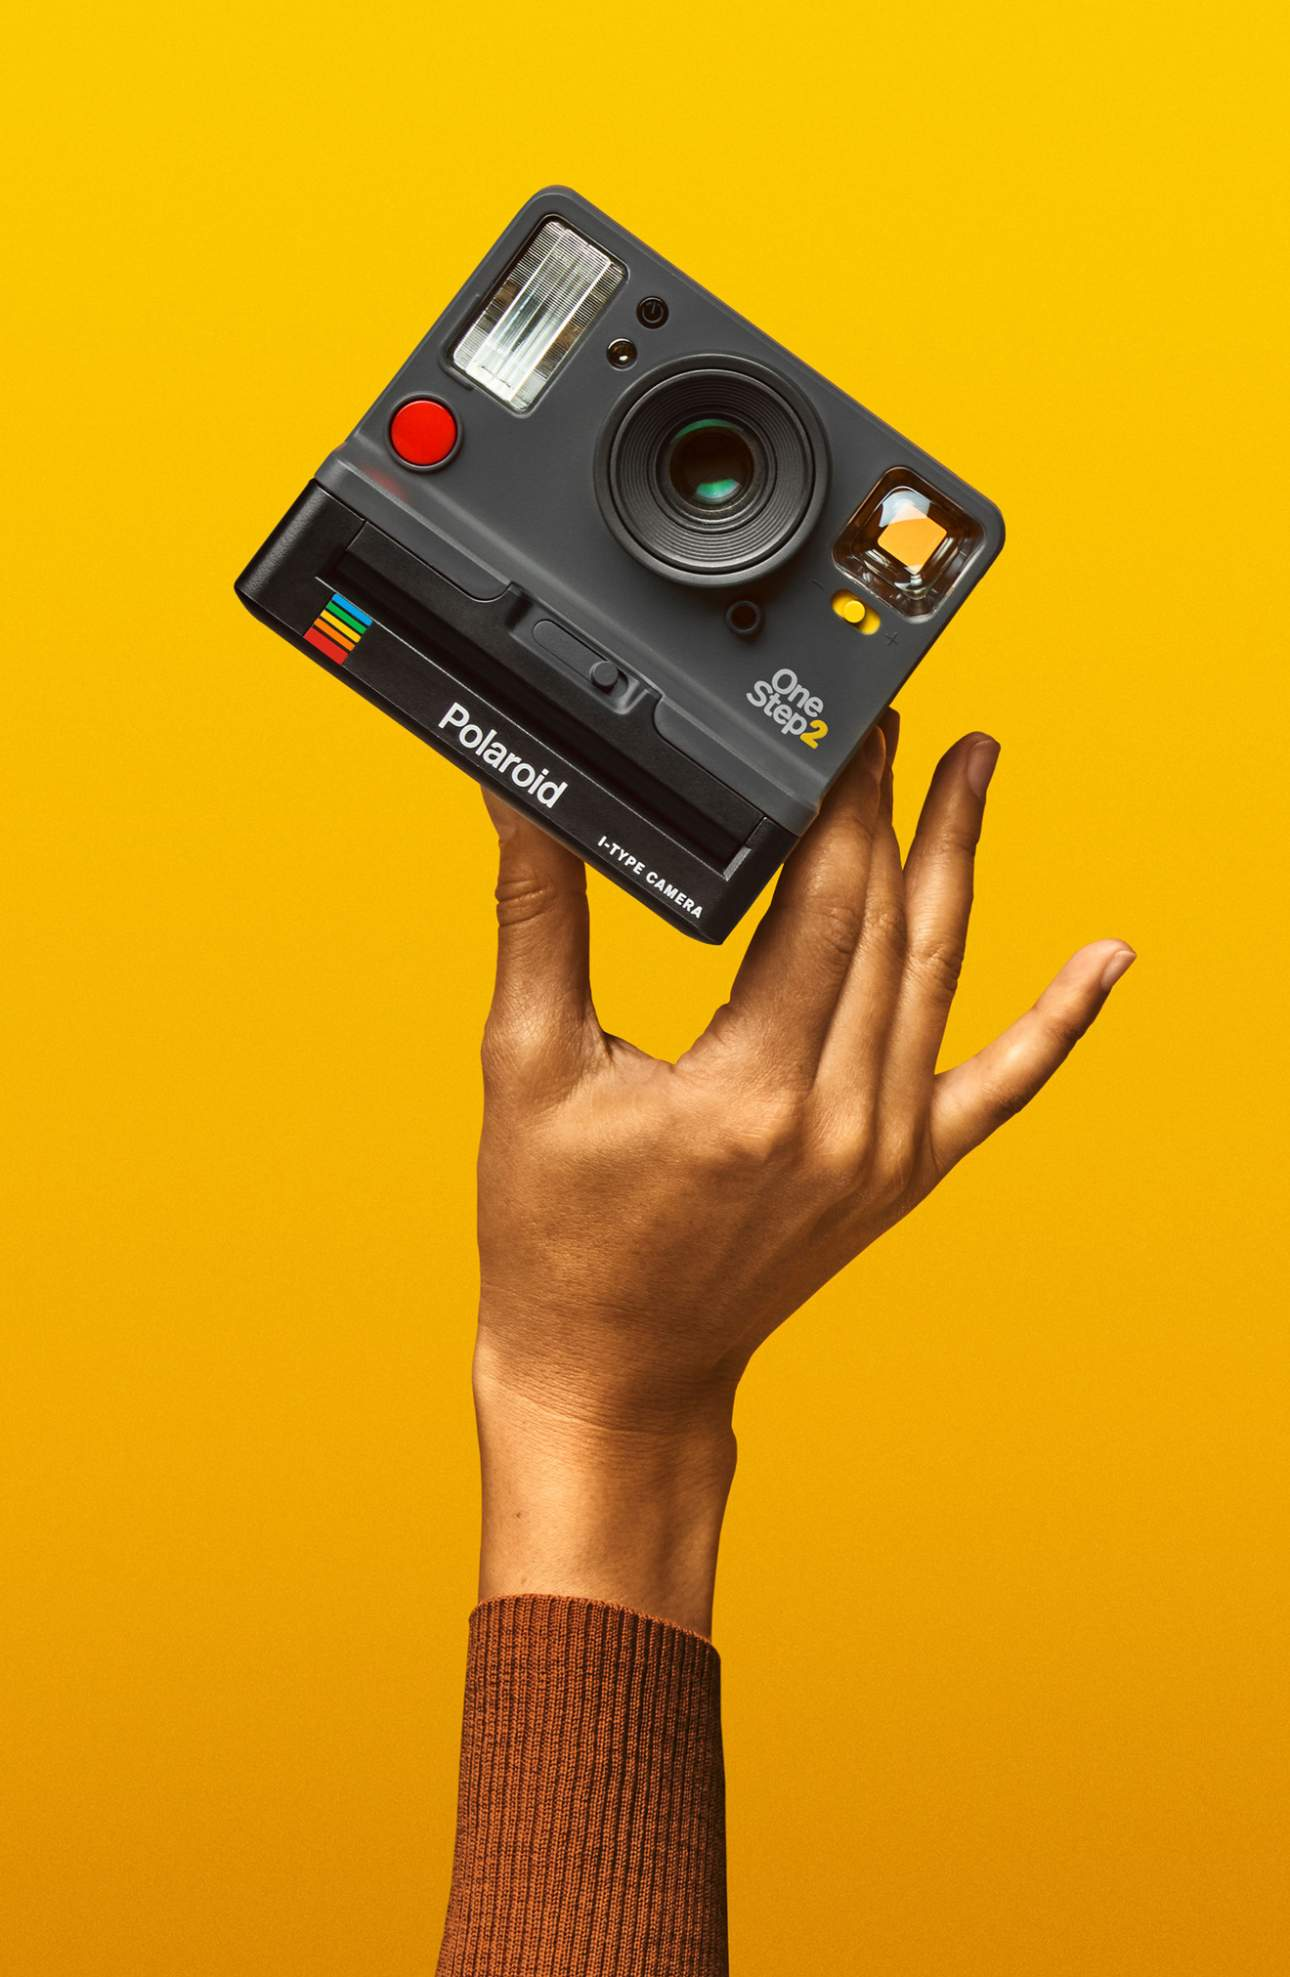 <p>Impossible Project Polaroid OneStep 2 Analog Instant Camera - $99.99. This is such a fun gift for the budding artist in your life or basically any teenage girl who wants to take a new kind of selfie. It's classic design meets contemporary style in this updated version of Polaroid's original OneStep instant camera. The price: $99.99. Purchase at Nordstrom or Amazon. (Image: Nordstrom){&amp;nbsp;}<br></p><p></p>